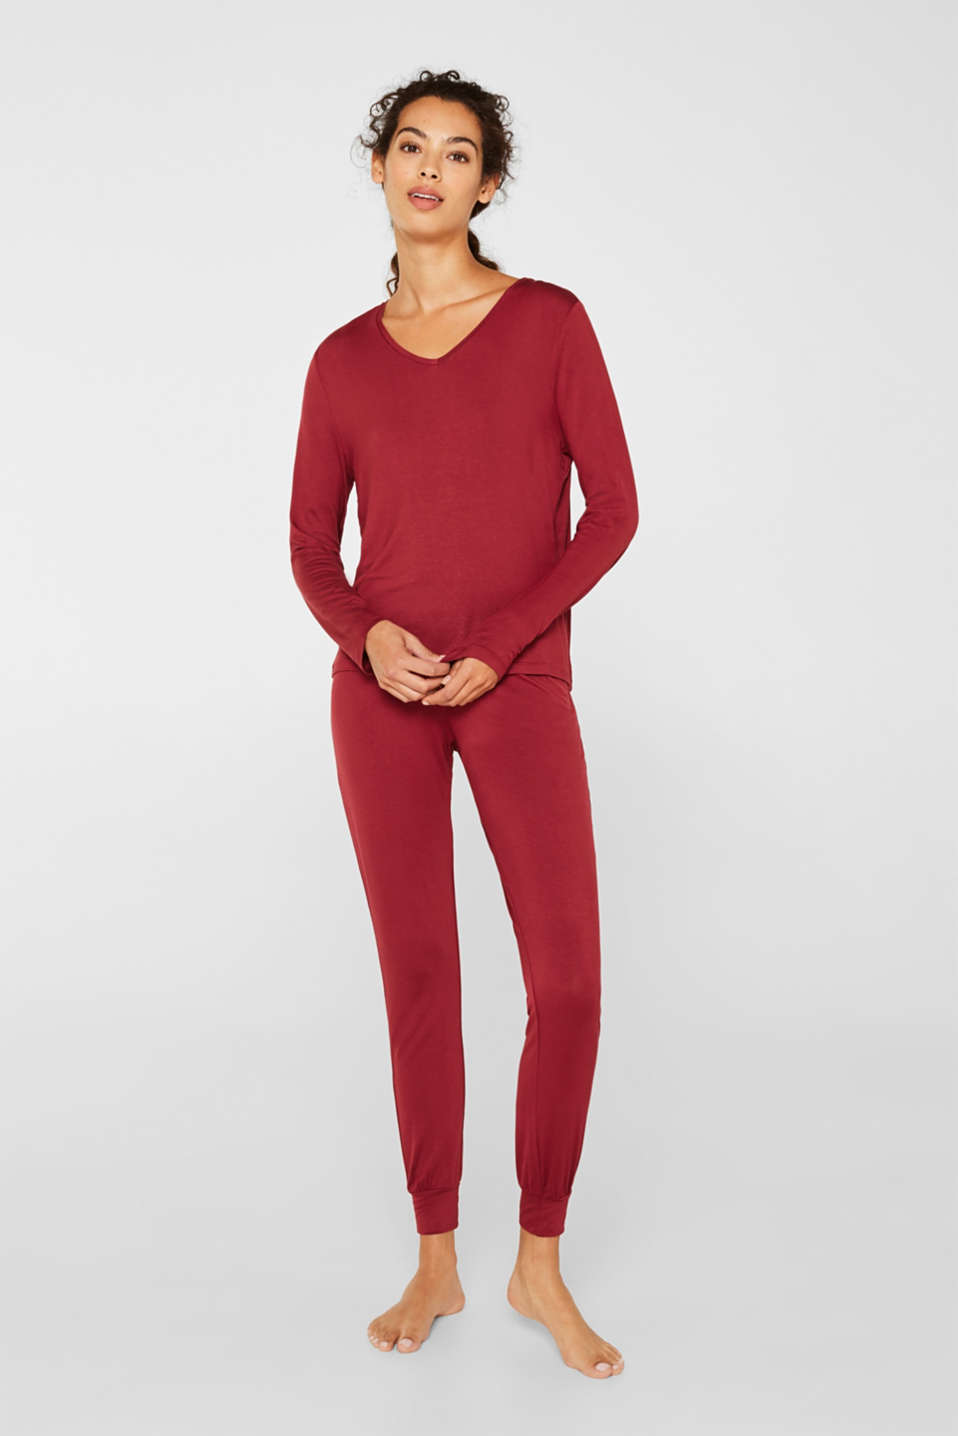 Esprit - Stretch jersey pyjamas with lace